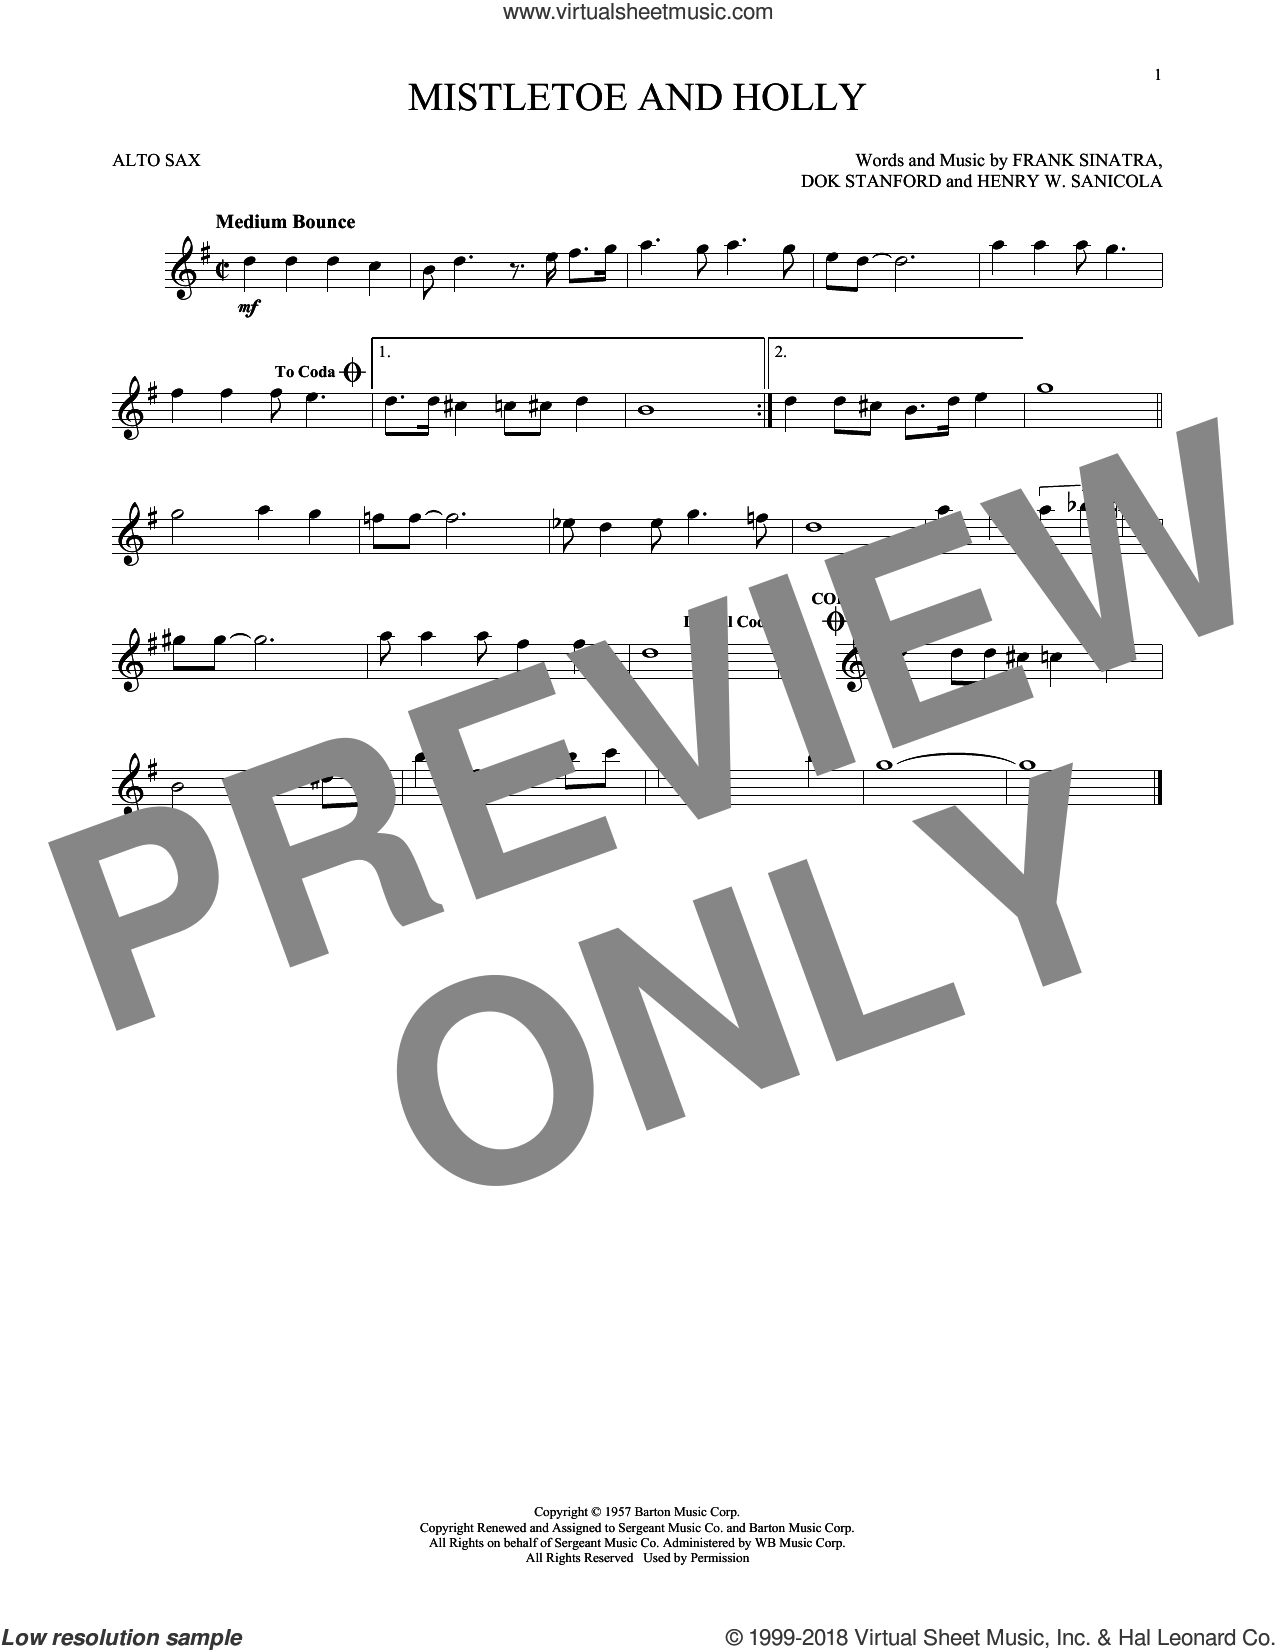 Mistletoe And Holly sheet music for alto saxophone solo by Frank Sinatra, Dok Stanford and Henry W. Sanicola, intermediate skill level